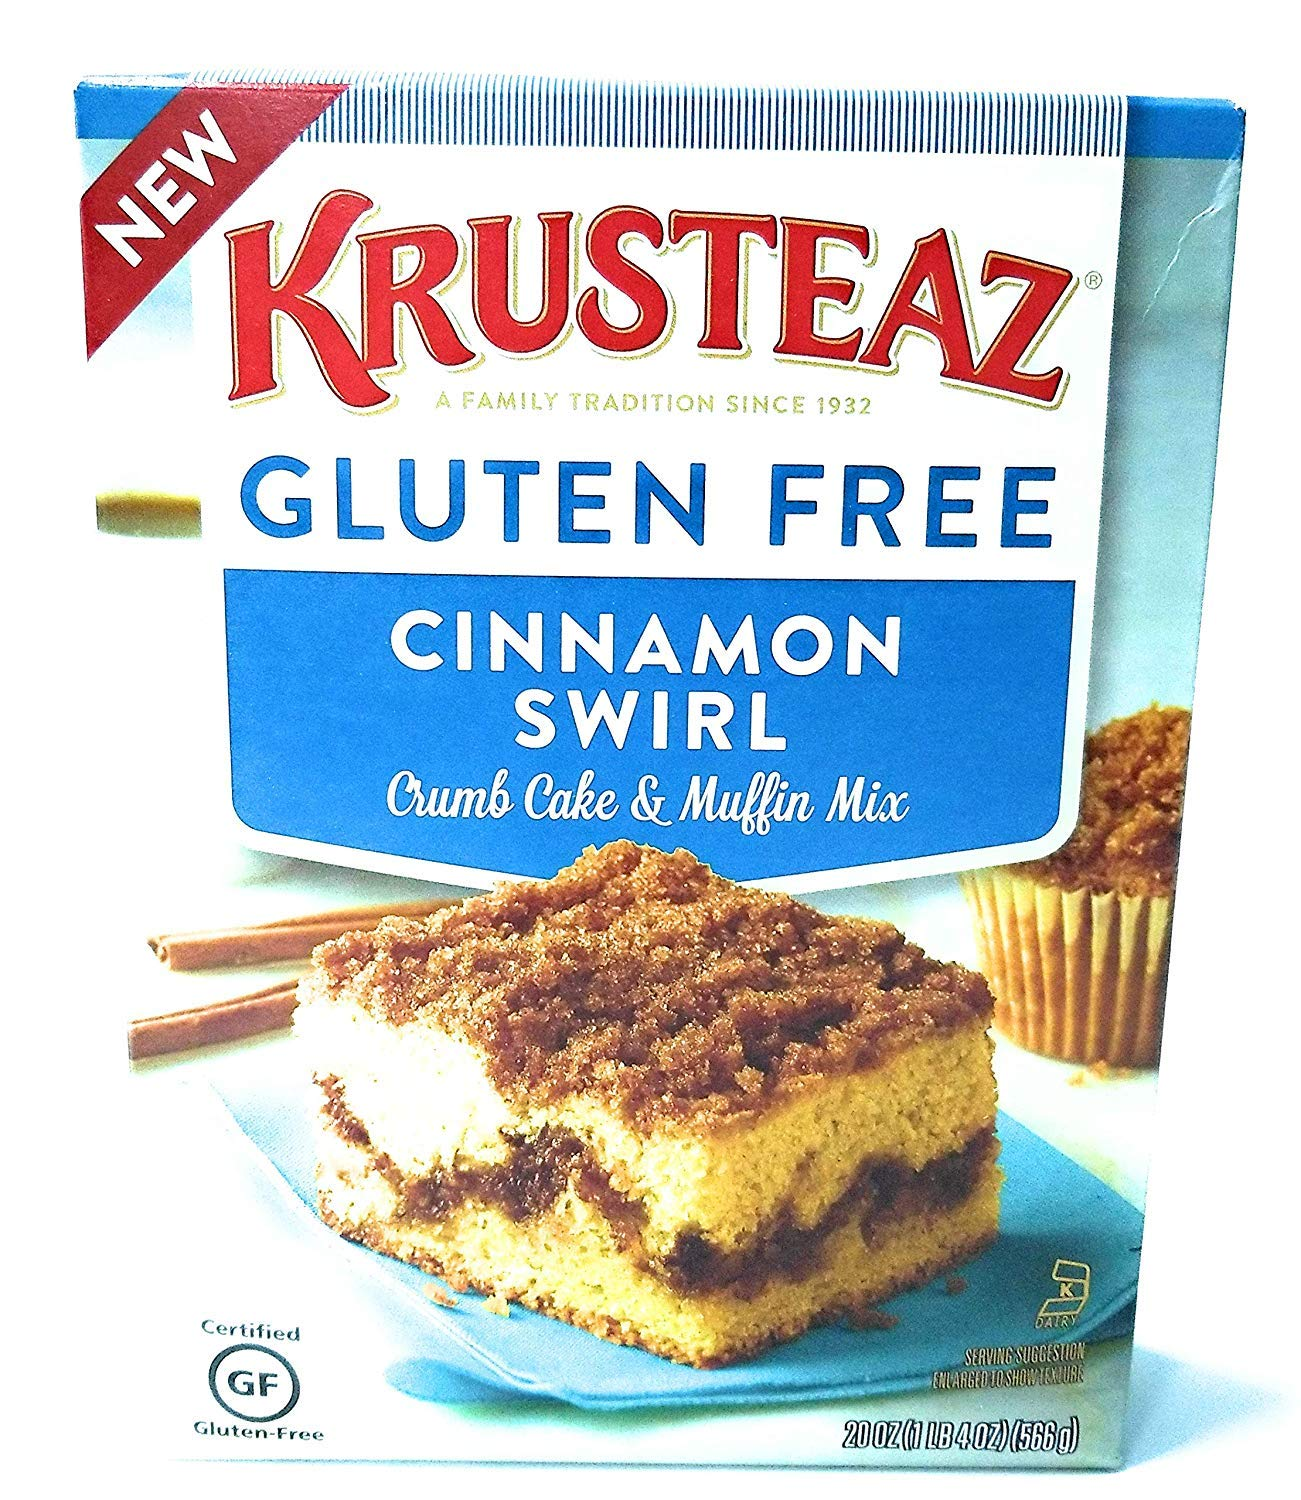 Krusteaz Gluten Free Cinnamon Swirl Crumb Cake & Muffin Mix 20oz (Pack of 3) by Krusteaz